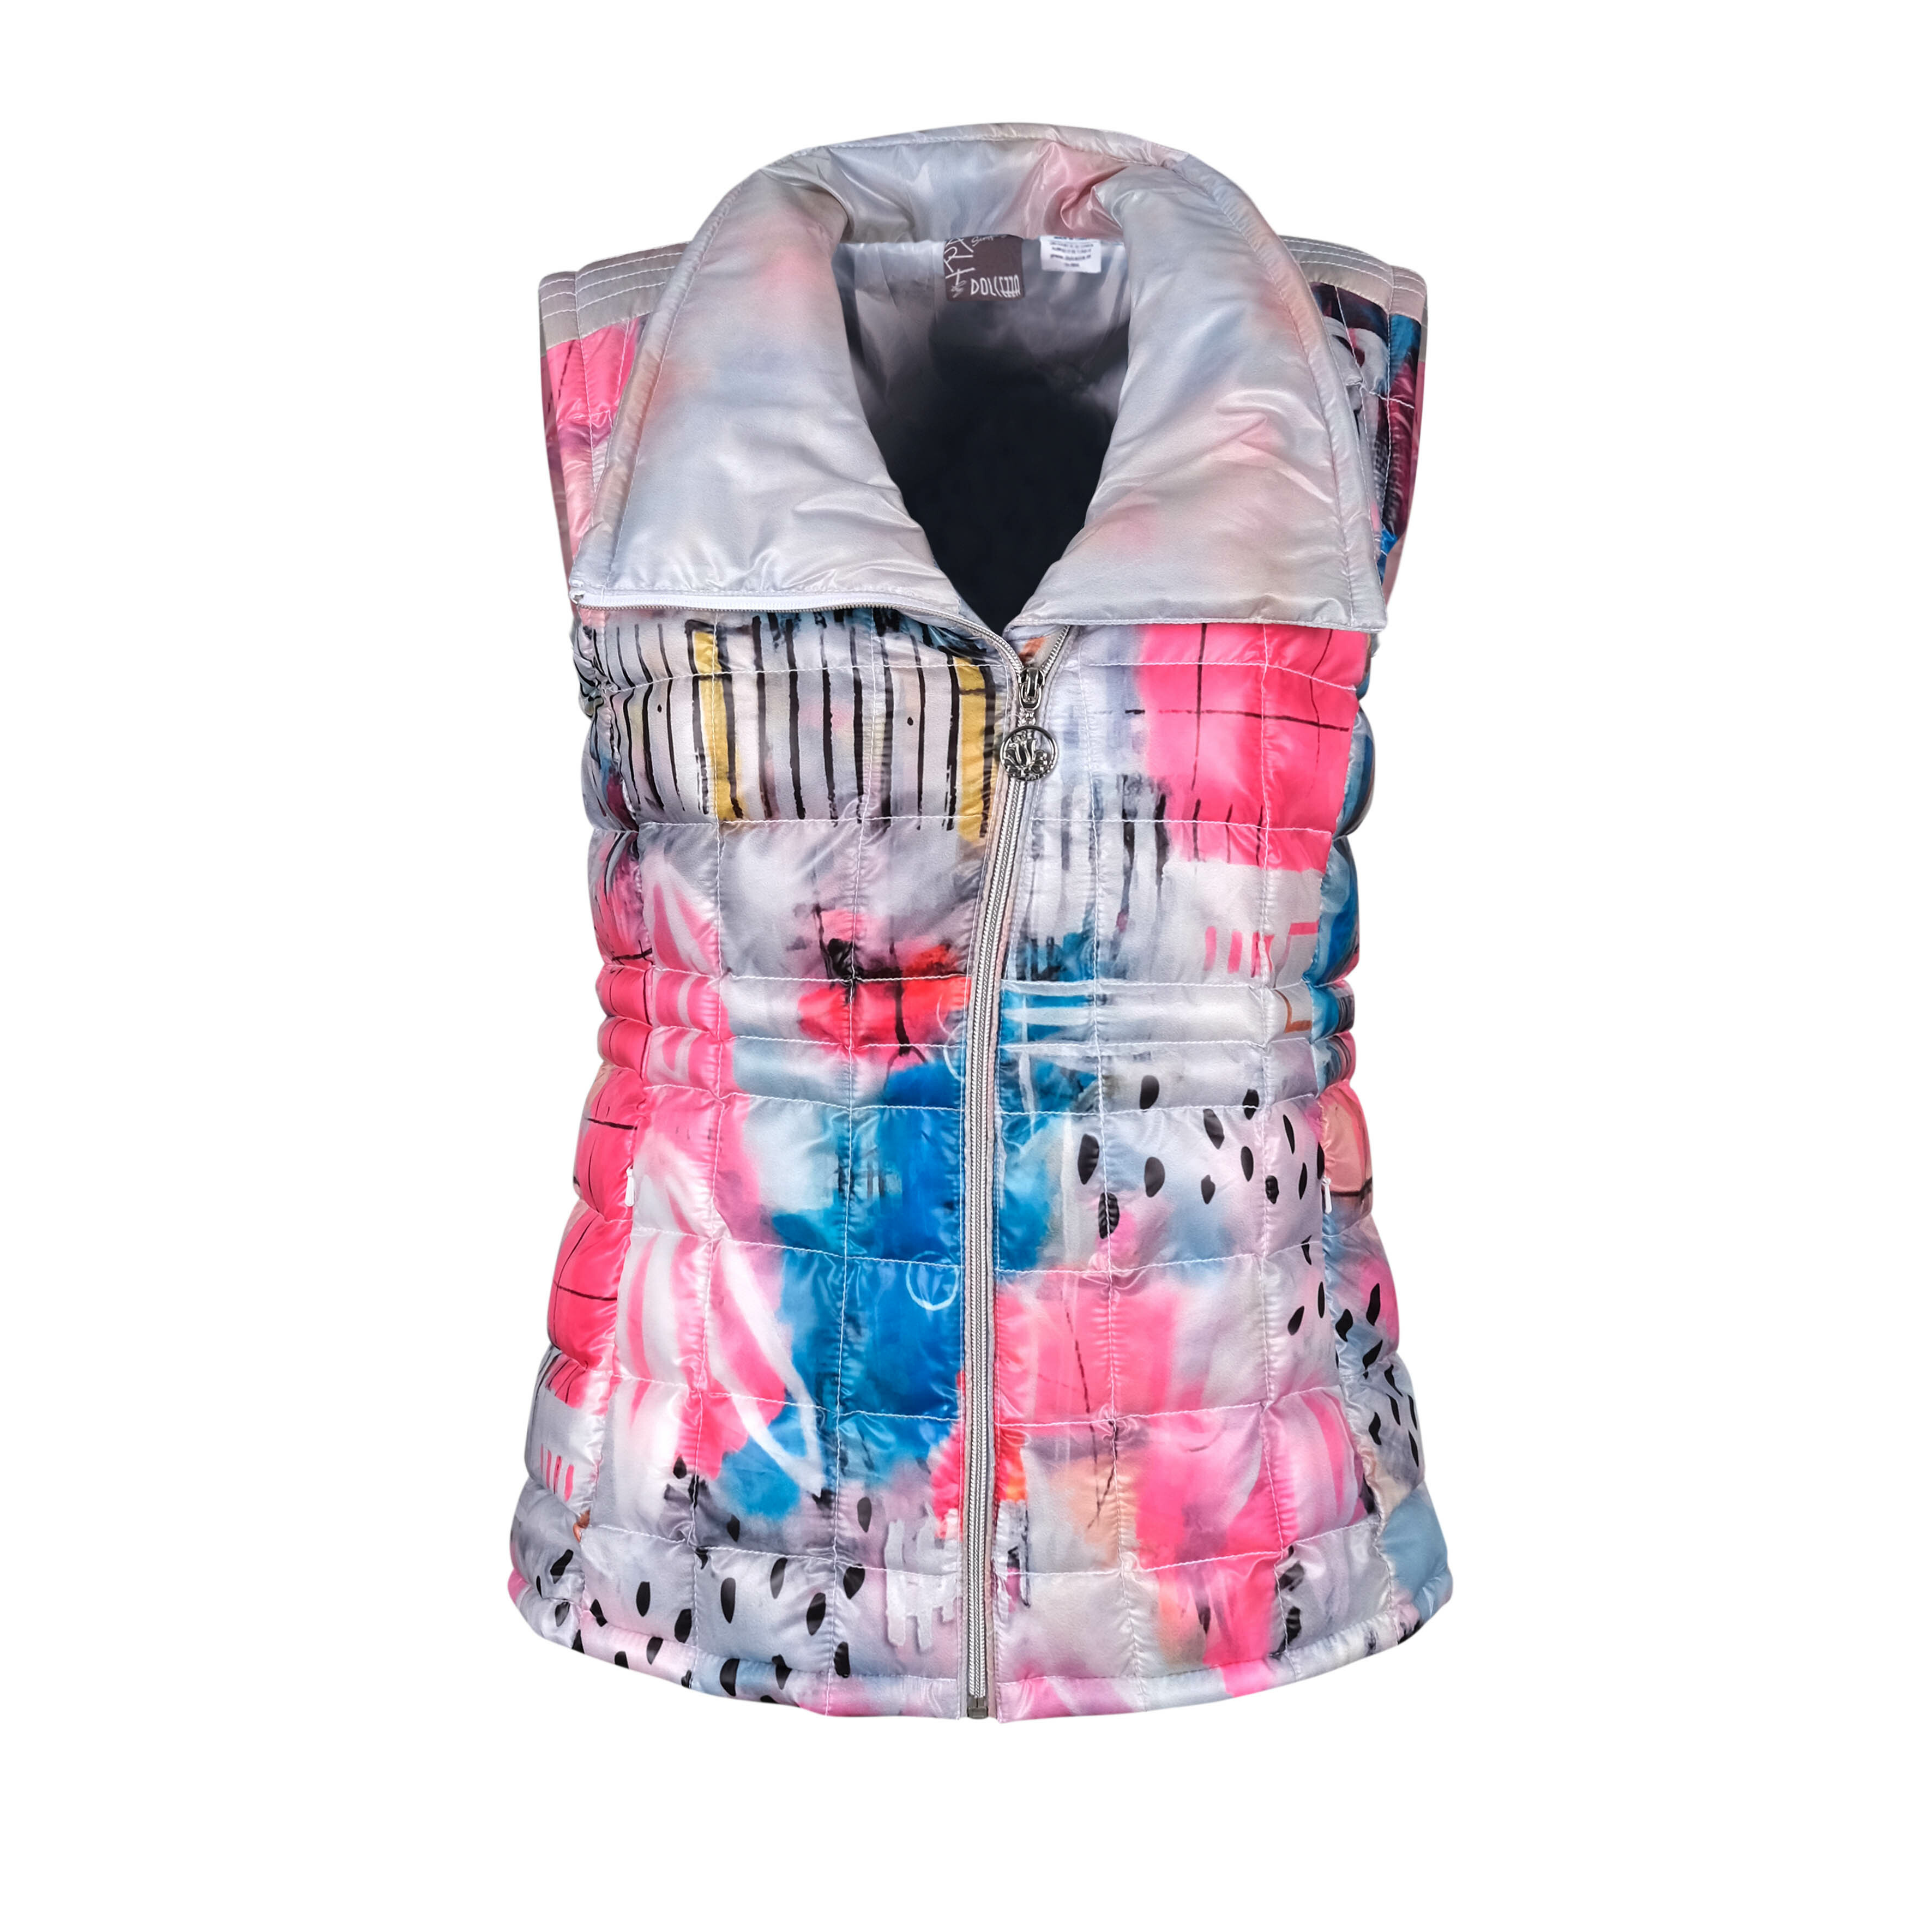 Simply Art Dolcezza: Receive The Best Things In Life Abstract Art Puffer Vest